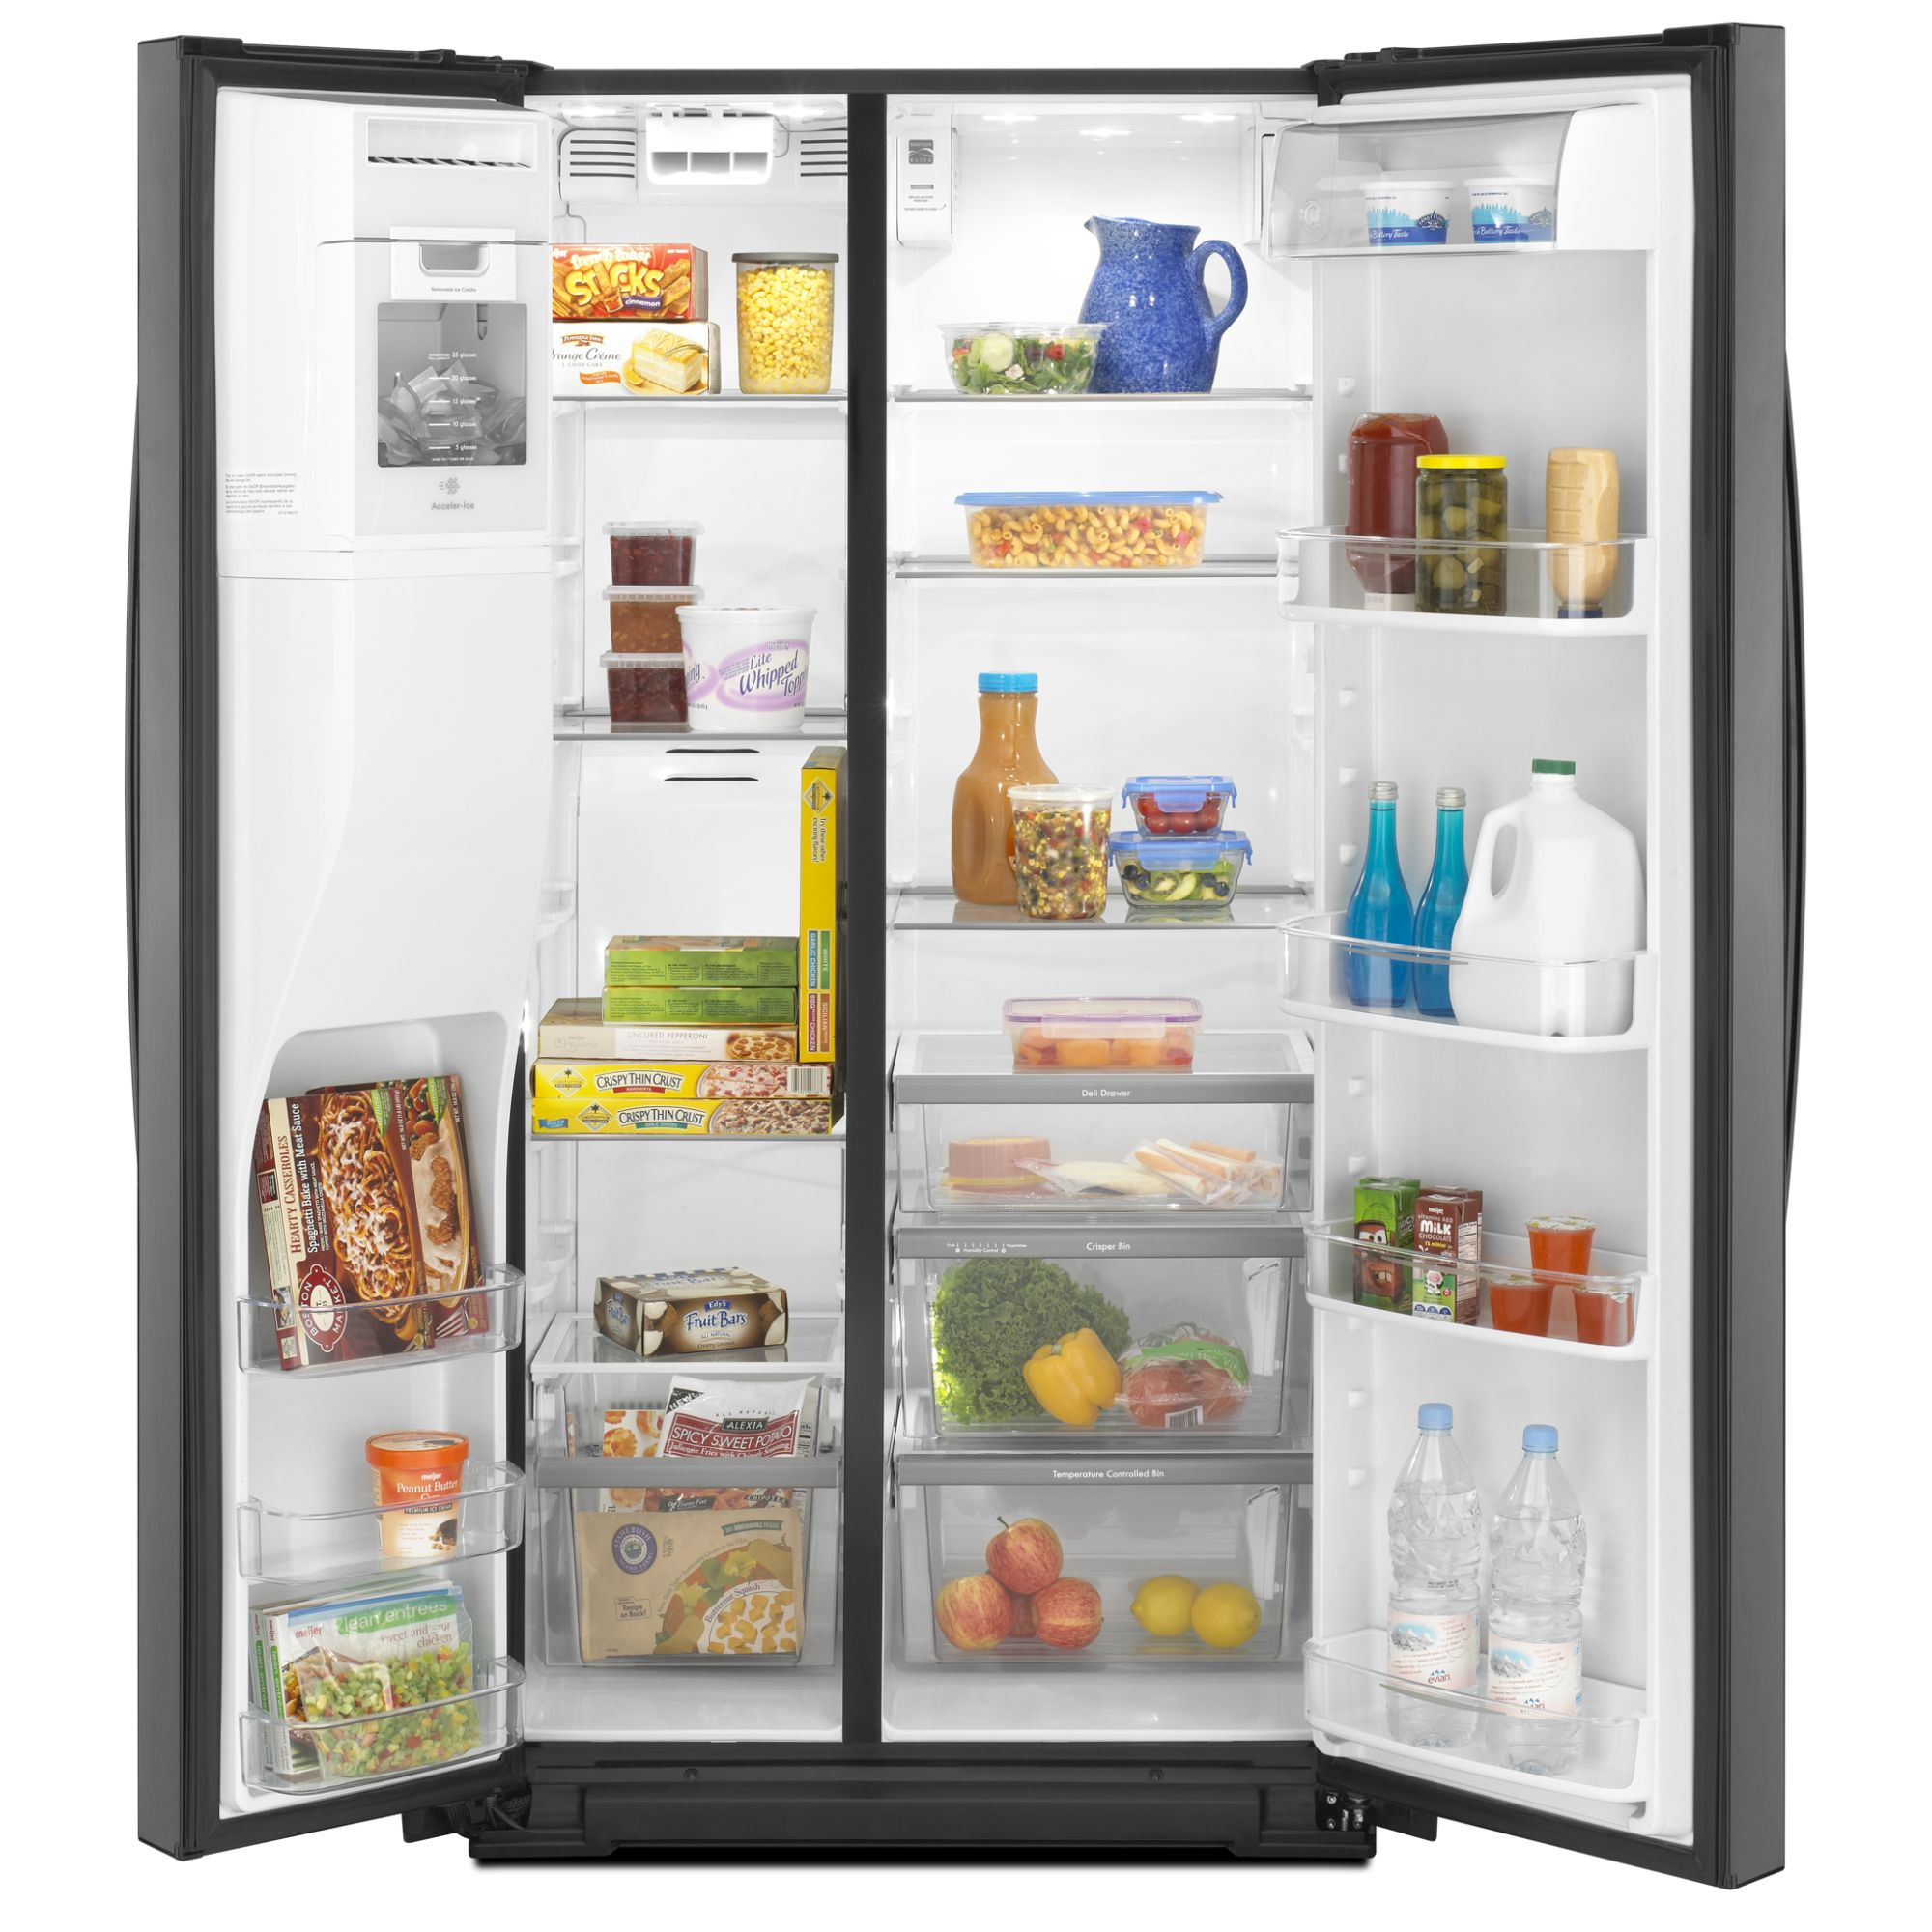 Kenmore Elite 24.6 cu. ft. Side-by-Side Refrigerator w/ Measured Fill - Black